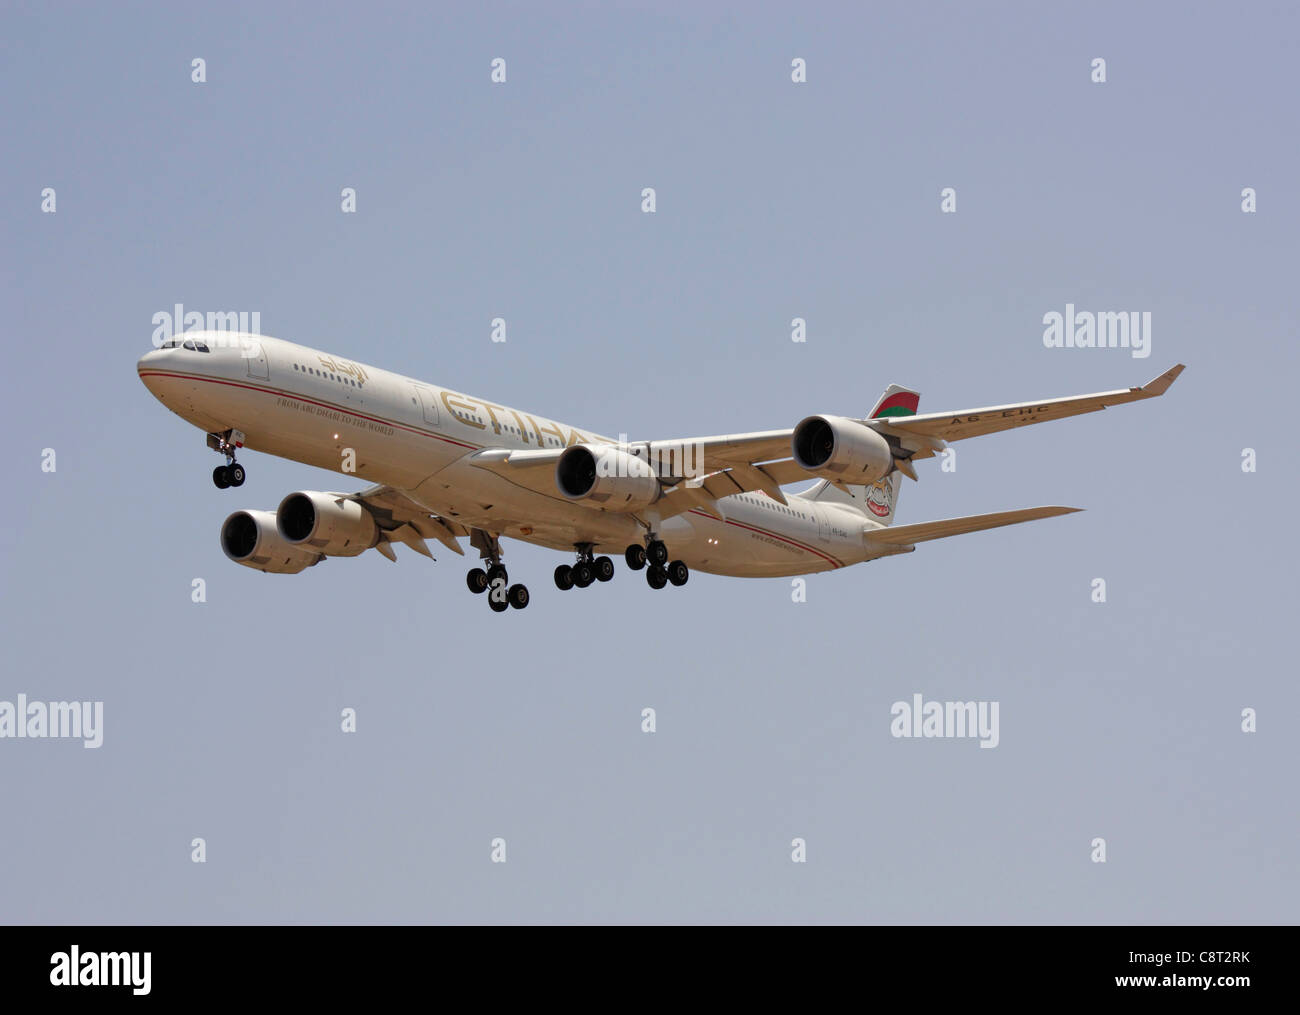 Etihad Airways Airbus A340-500 four-engine jet airliner on approach. Long-distance commercial flight. - Stock Image